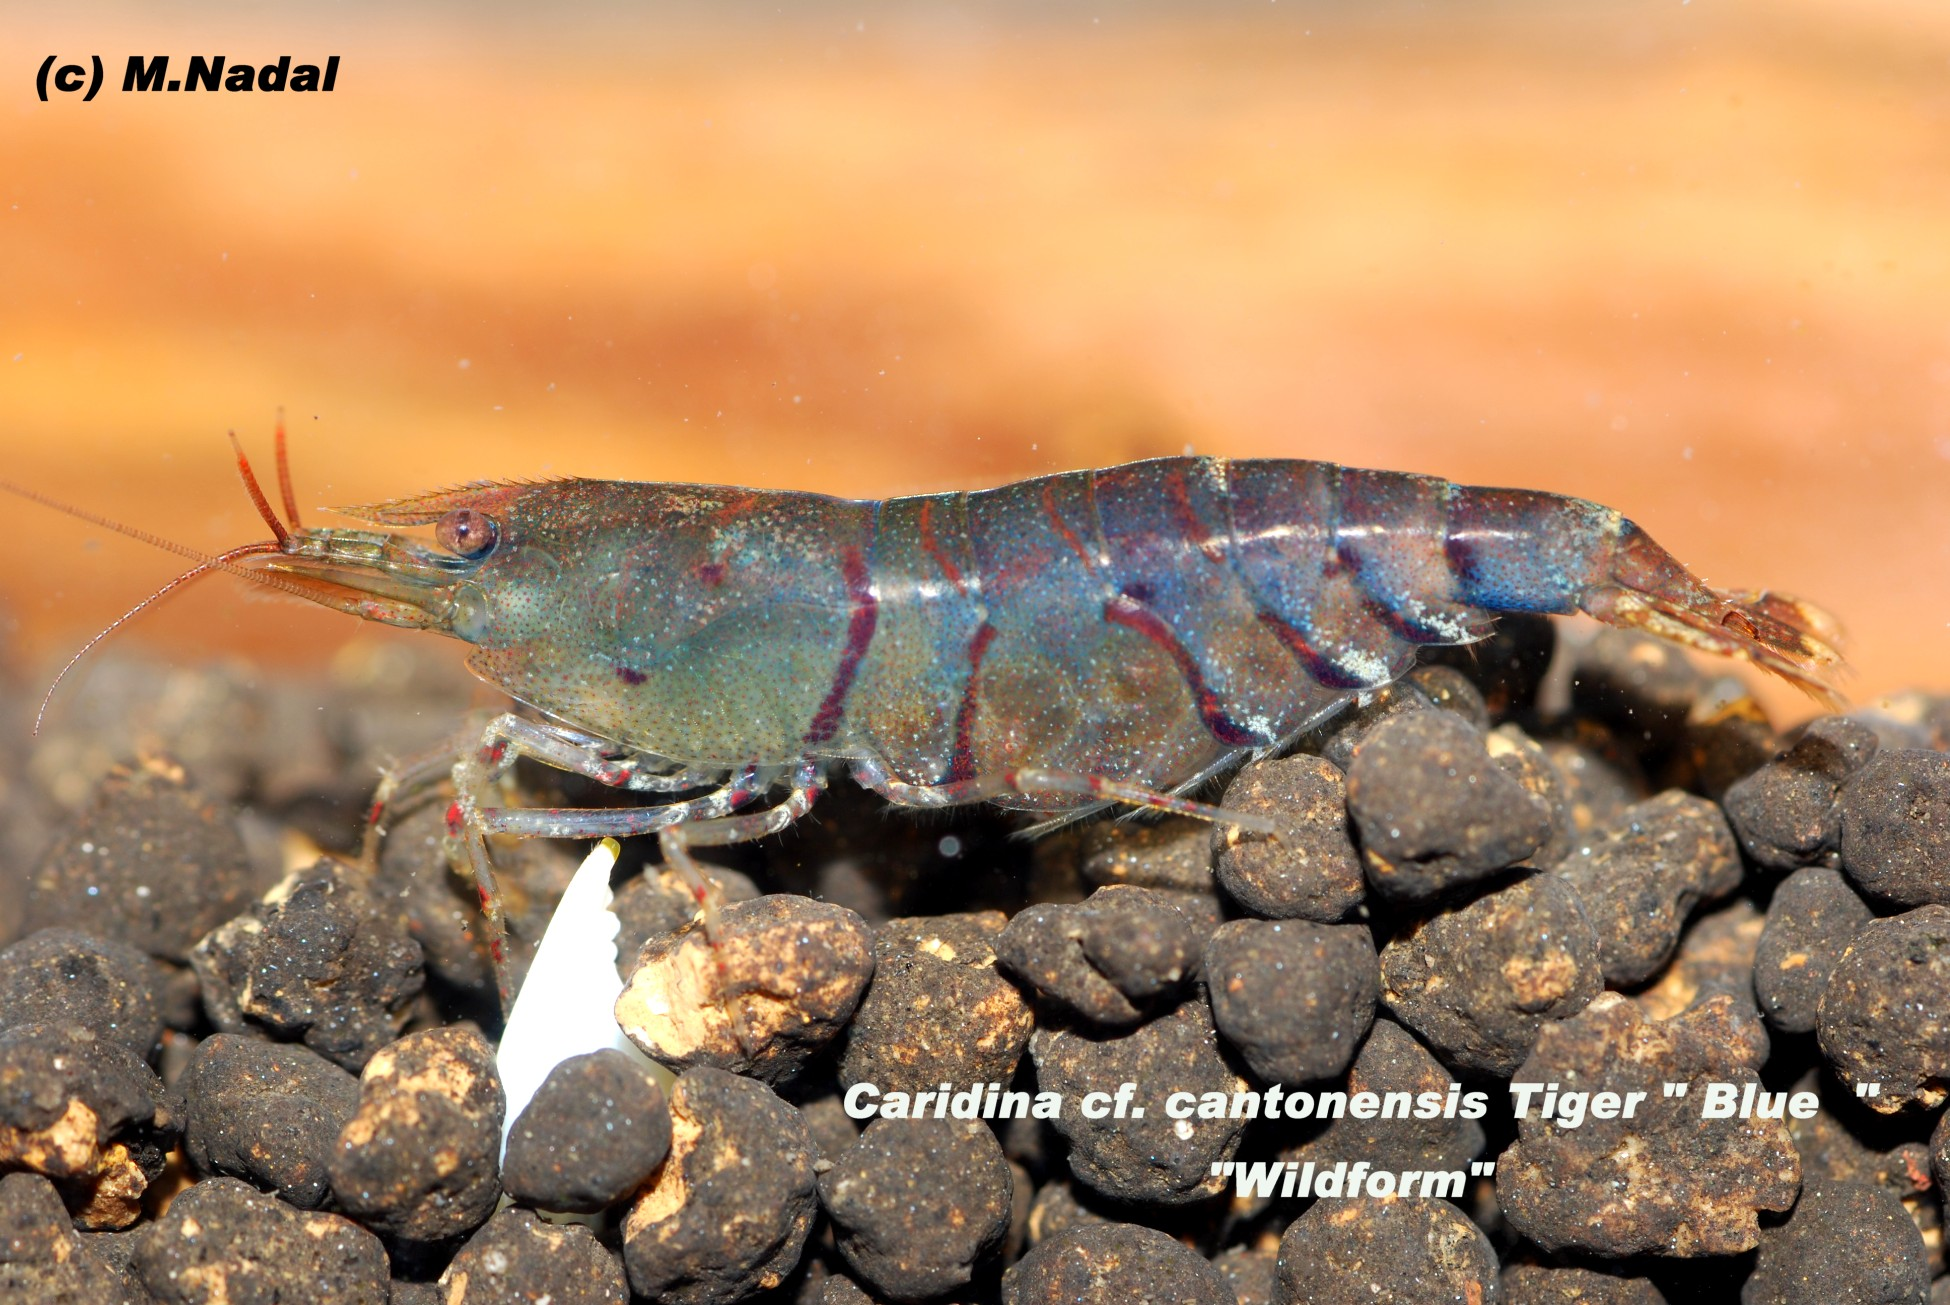 Caridina sp. cantonensis Tiger Blue/Wildform (Синий/Дикая форма)